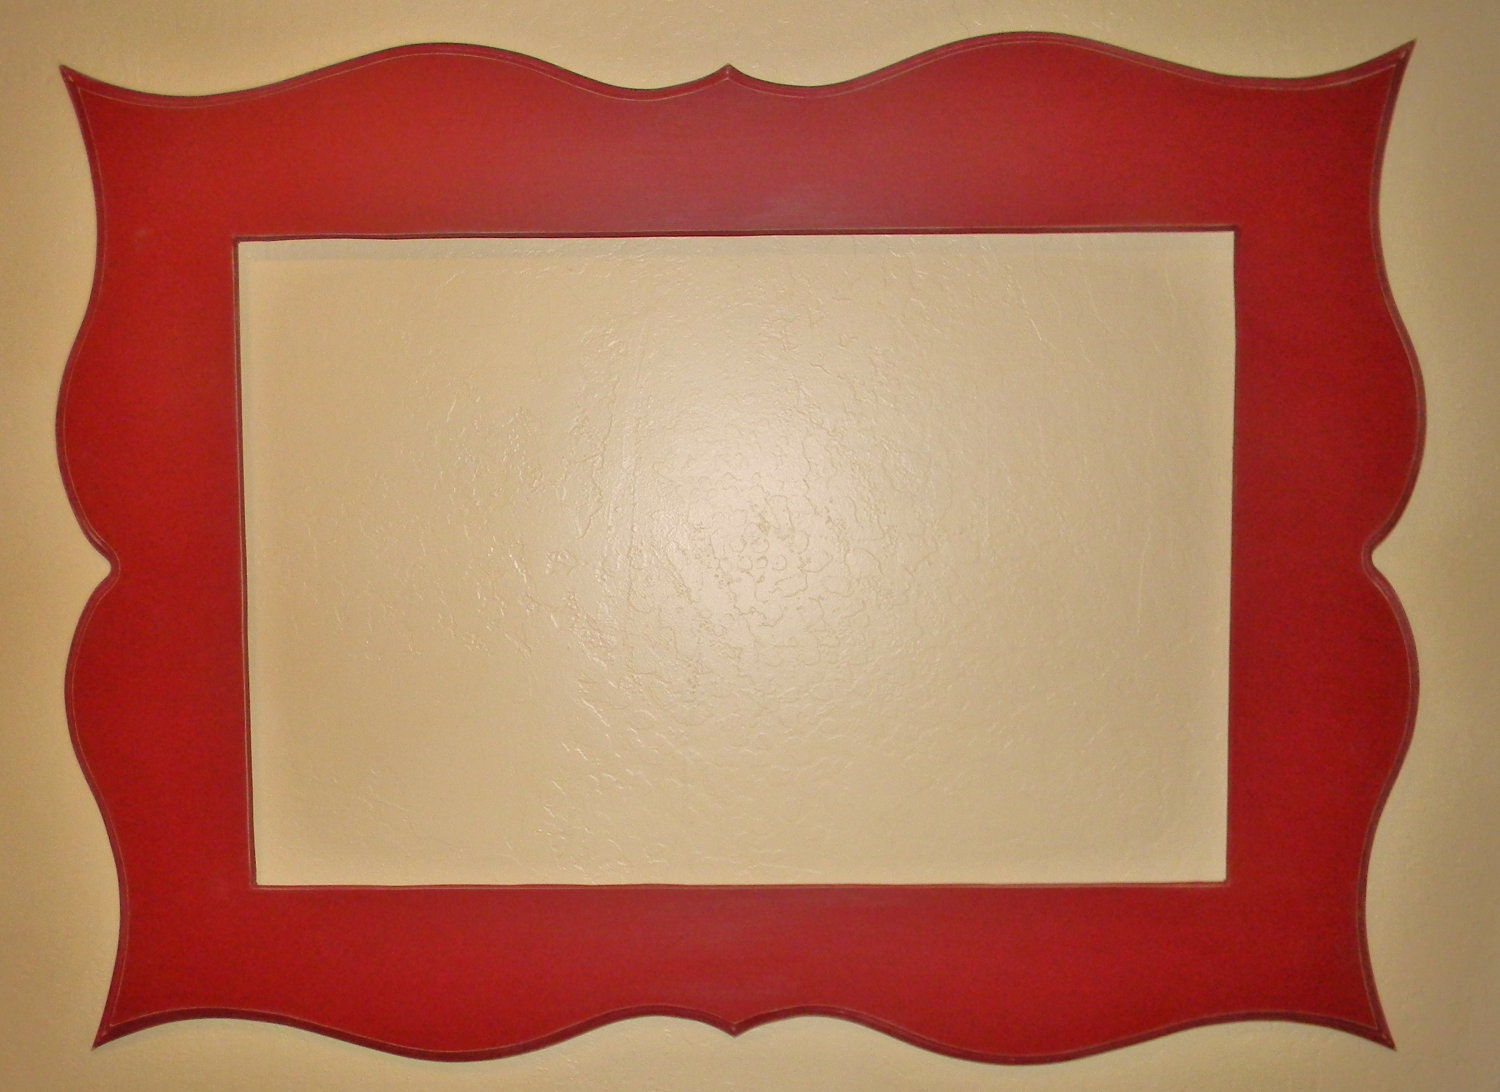 Hobby lobby picture frames poster size